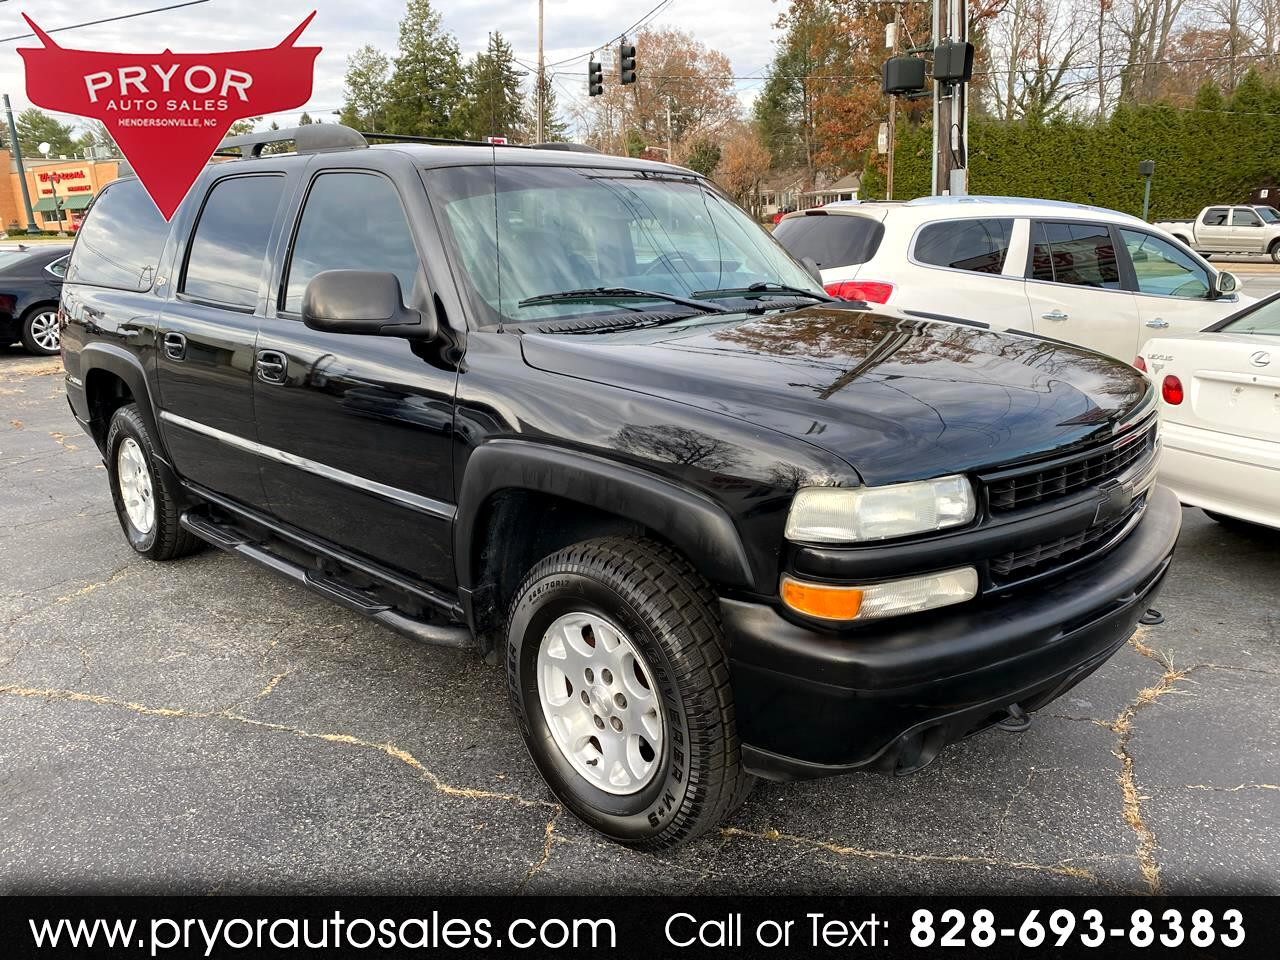 used 2003 chevrolet suburban 1500 4wd for sale in hendersonville nc 28791 pryor auto sales hendersonville nc 28791 pryor auto sales